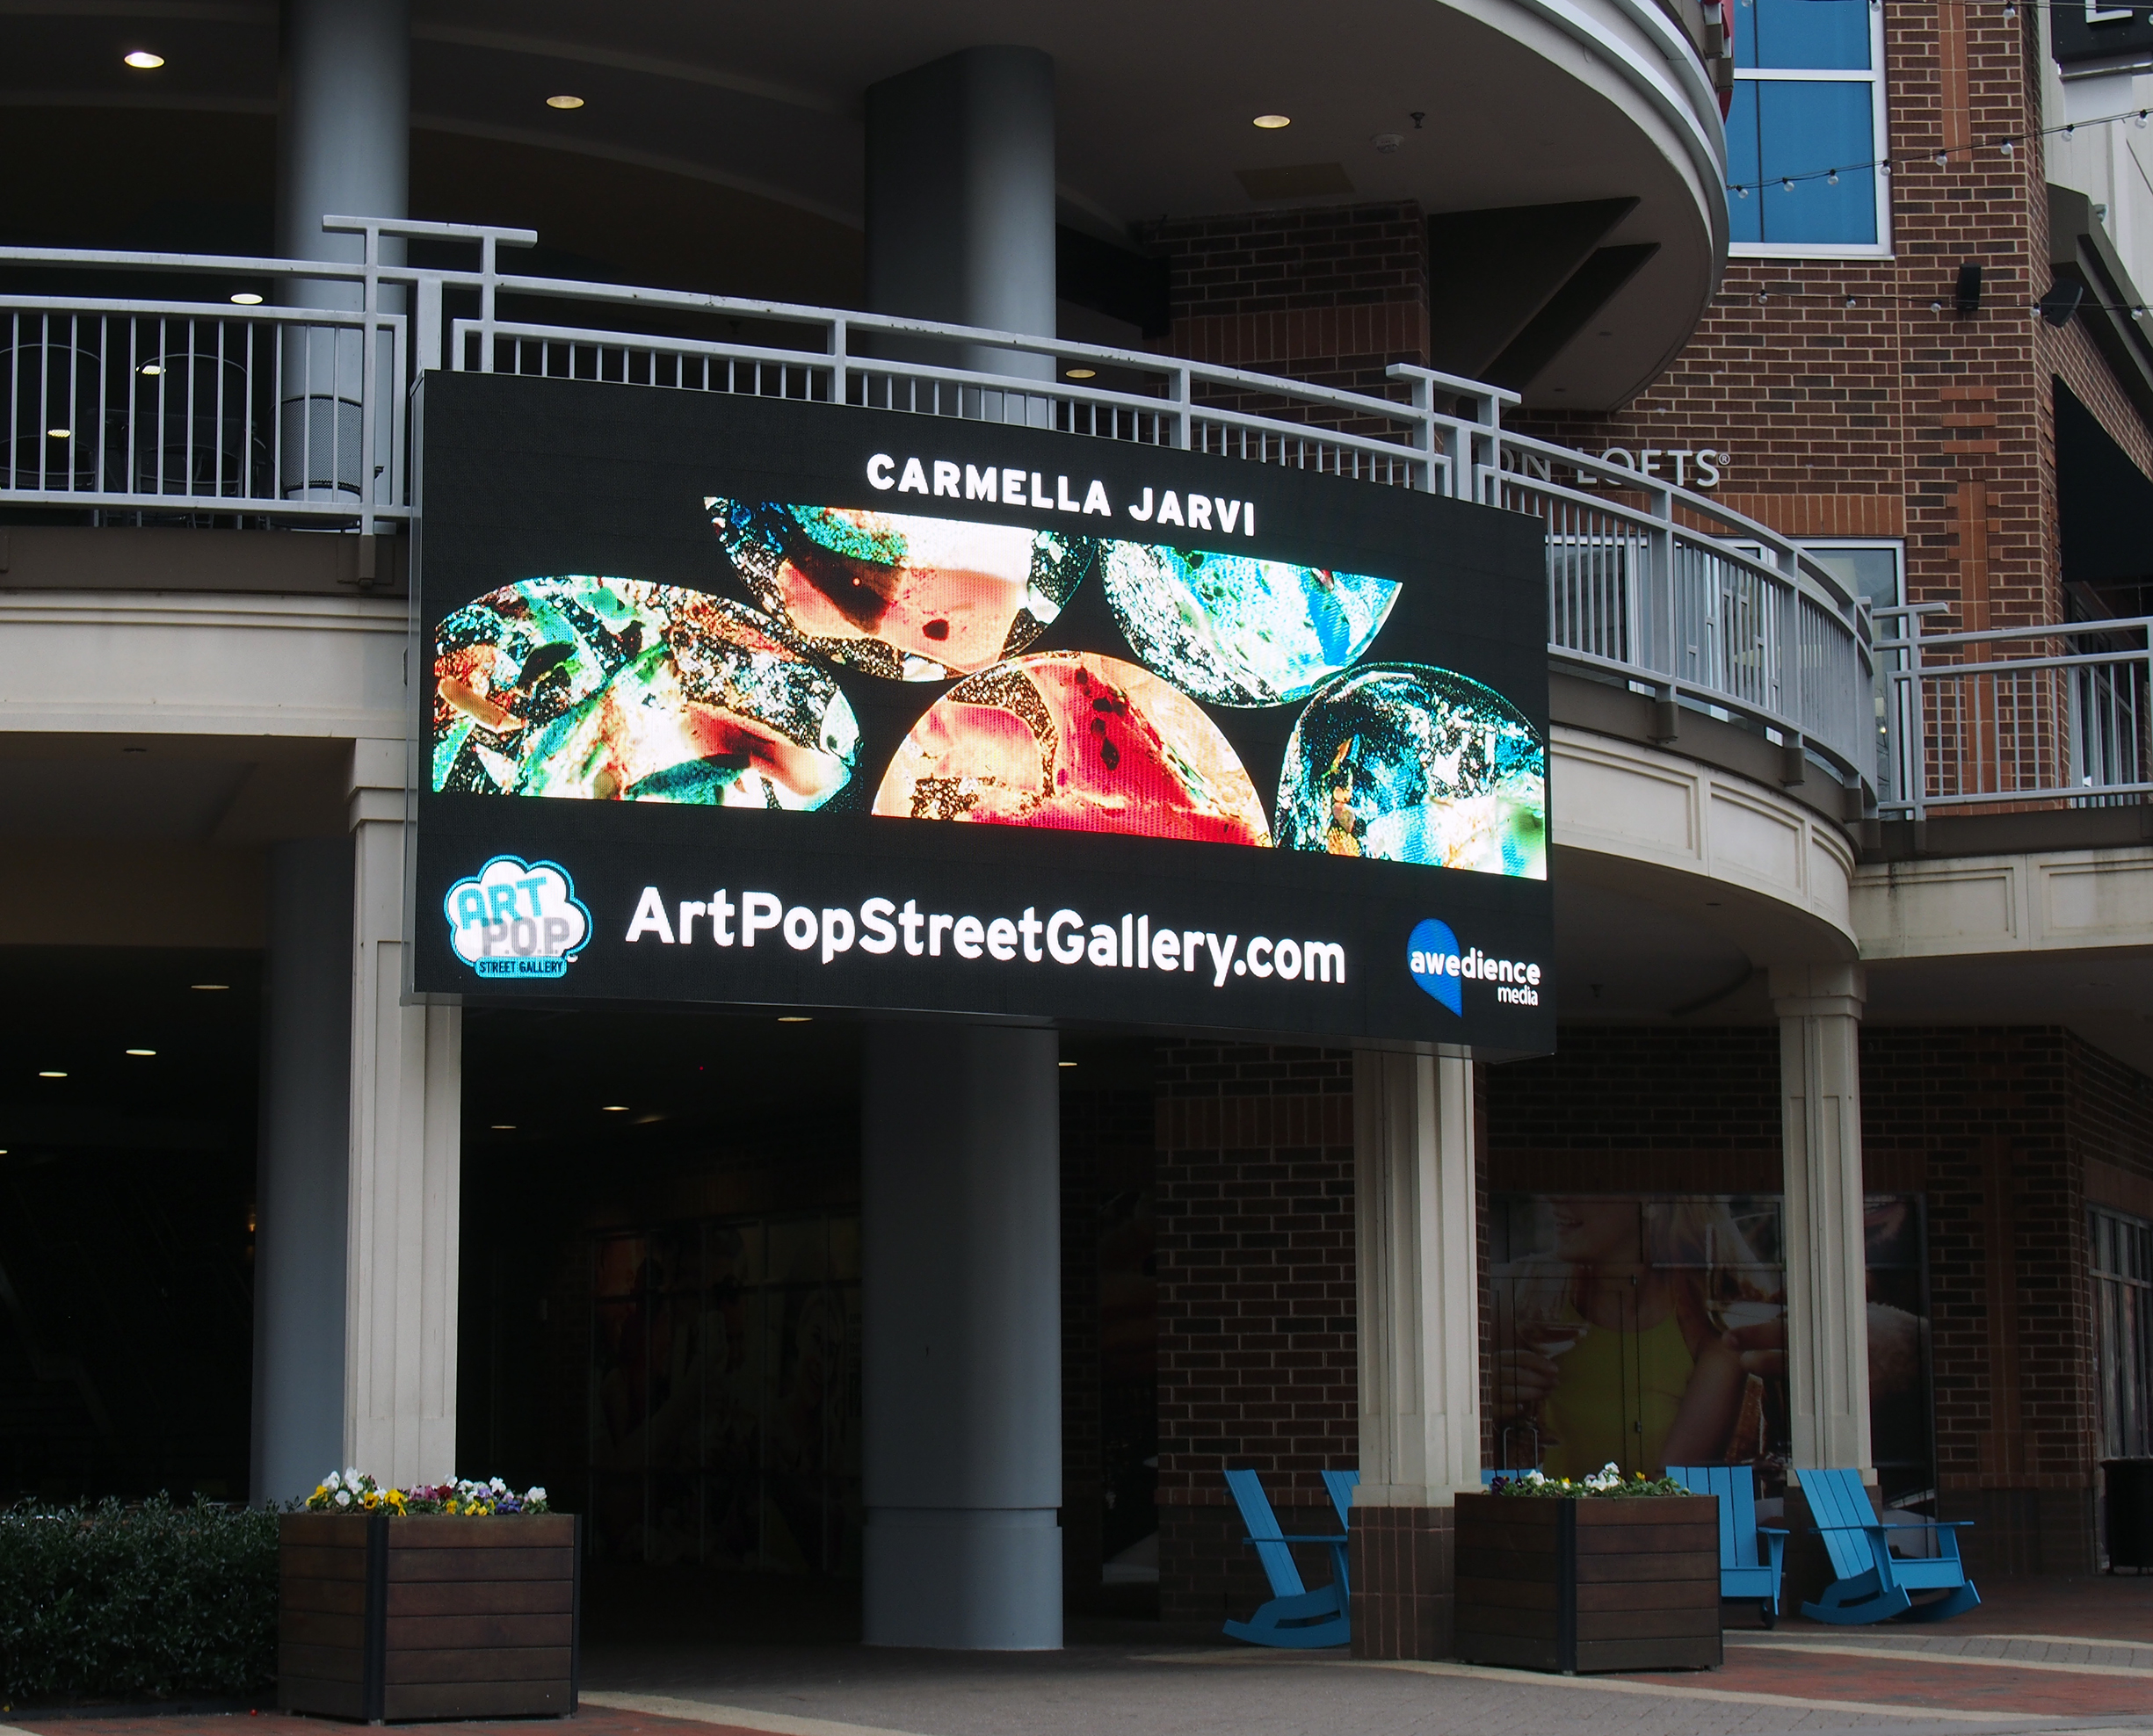 Jarvi's ArtPopCLT 2018 image on a large curved digital display at  Ballantyne Village  - thanks to  Awedience Media :)